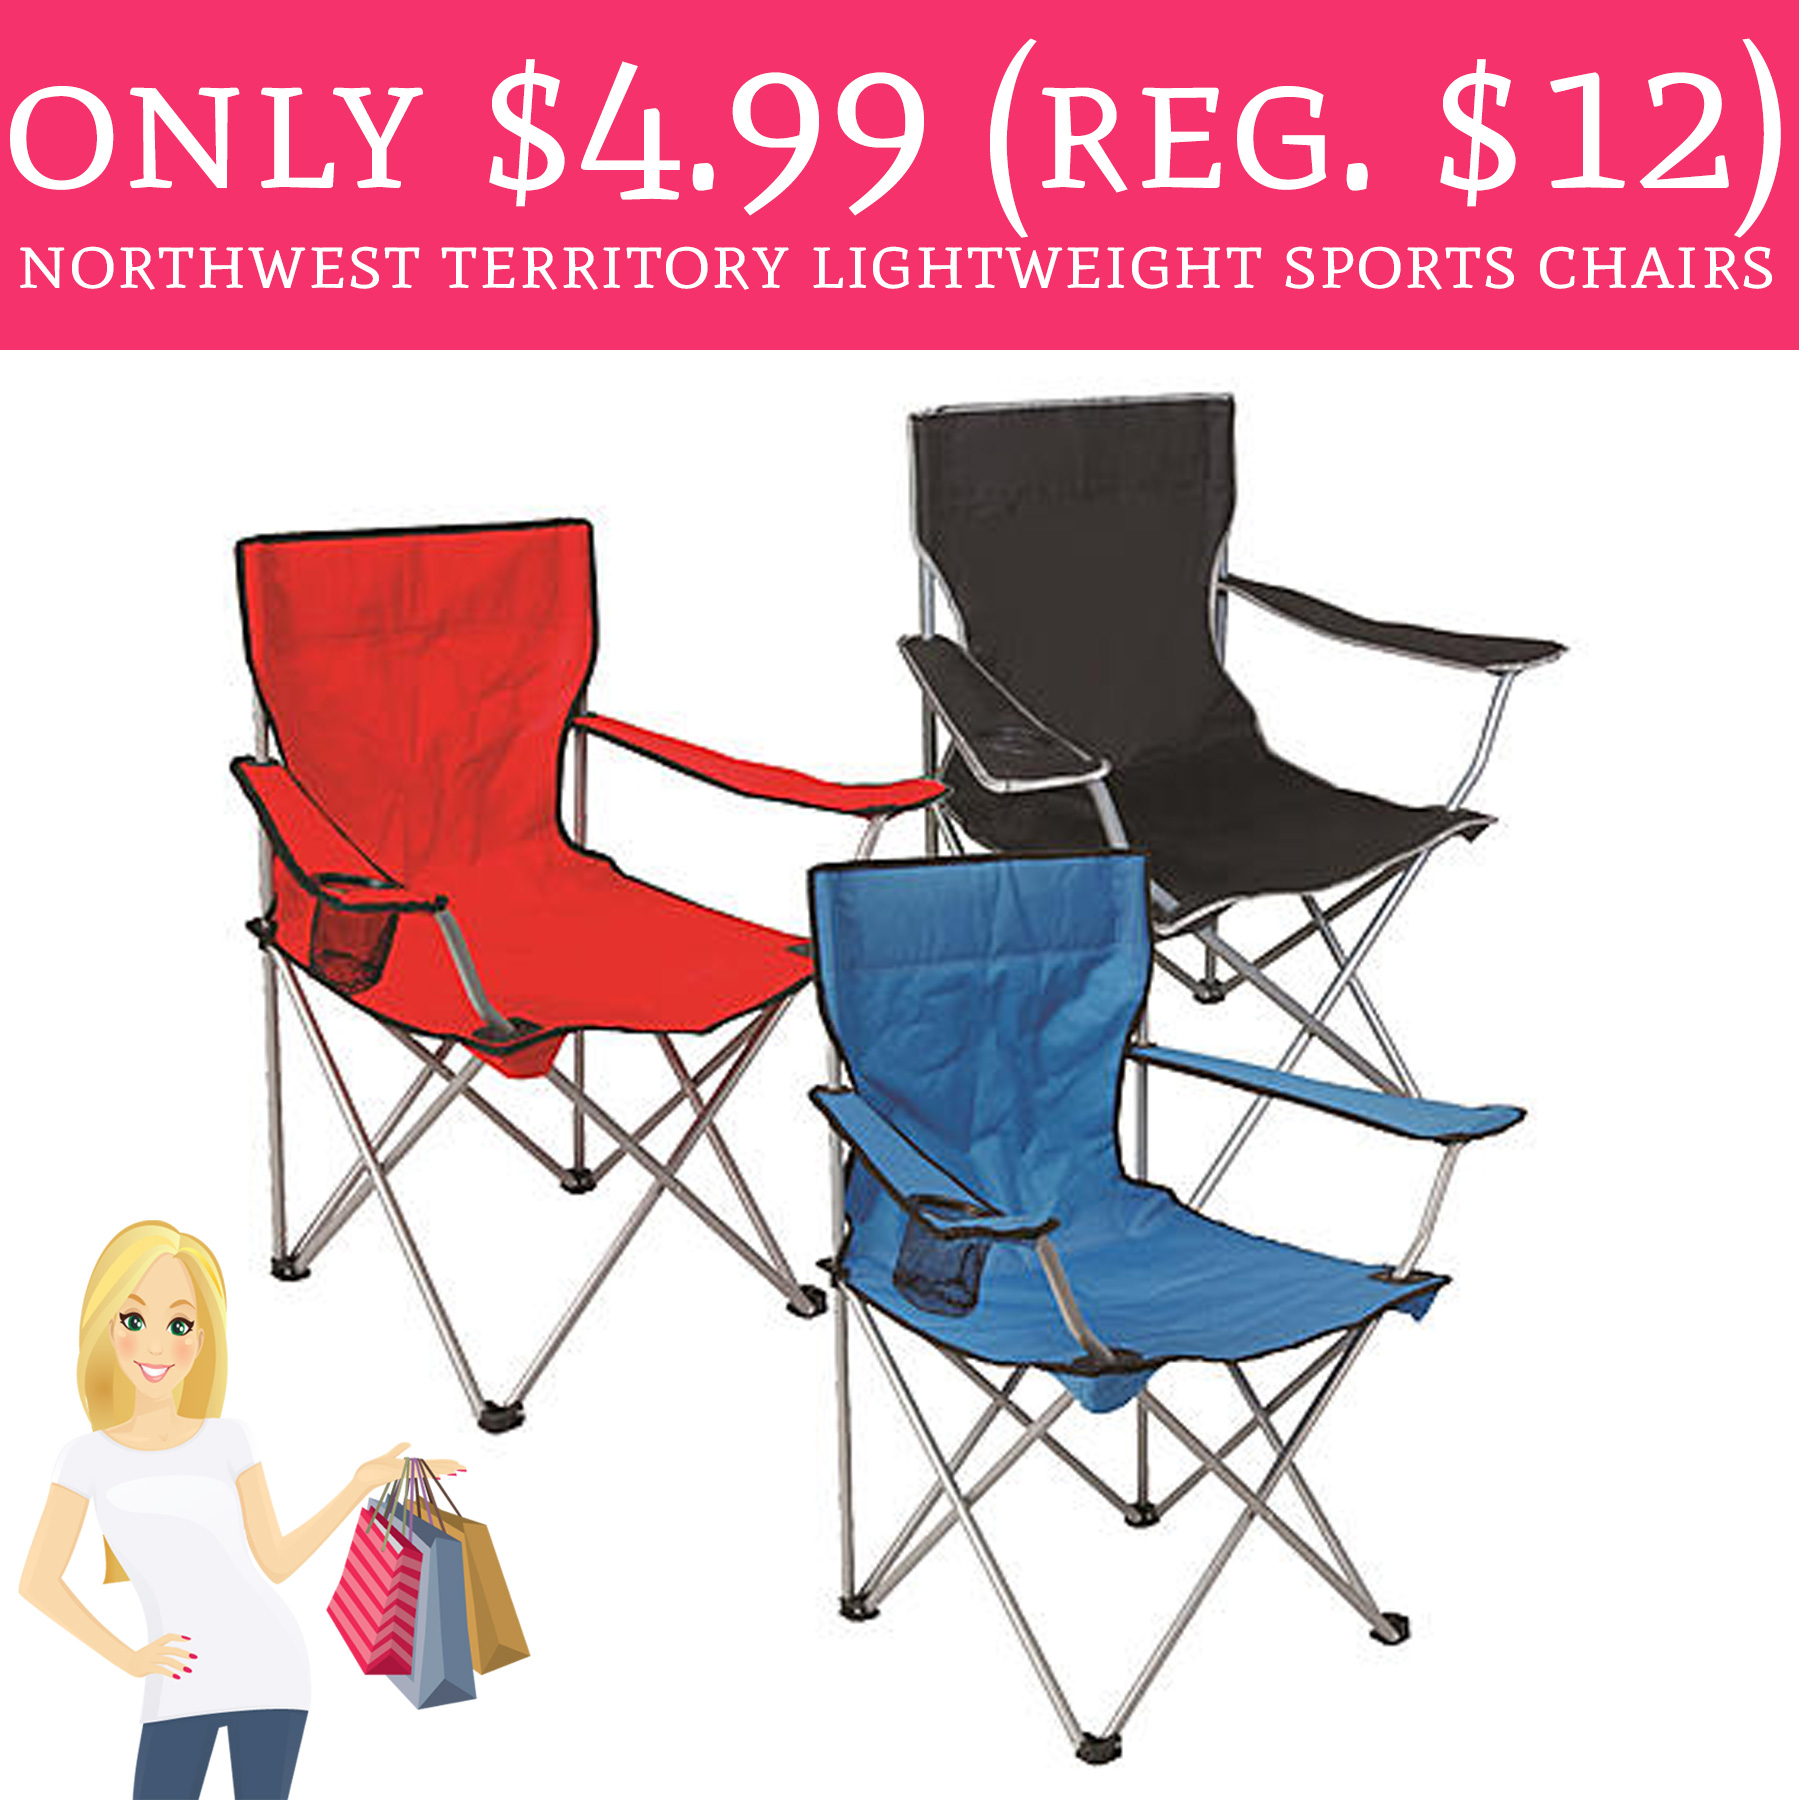 northwest territory chairs chair covers in india only 4 99 regular 12 lightweight sports perfect for summer